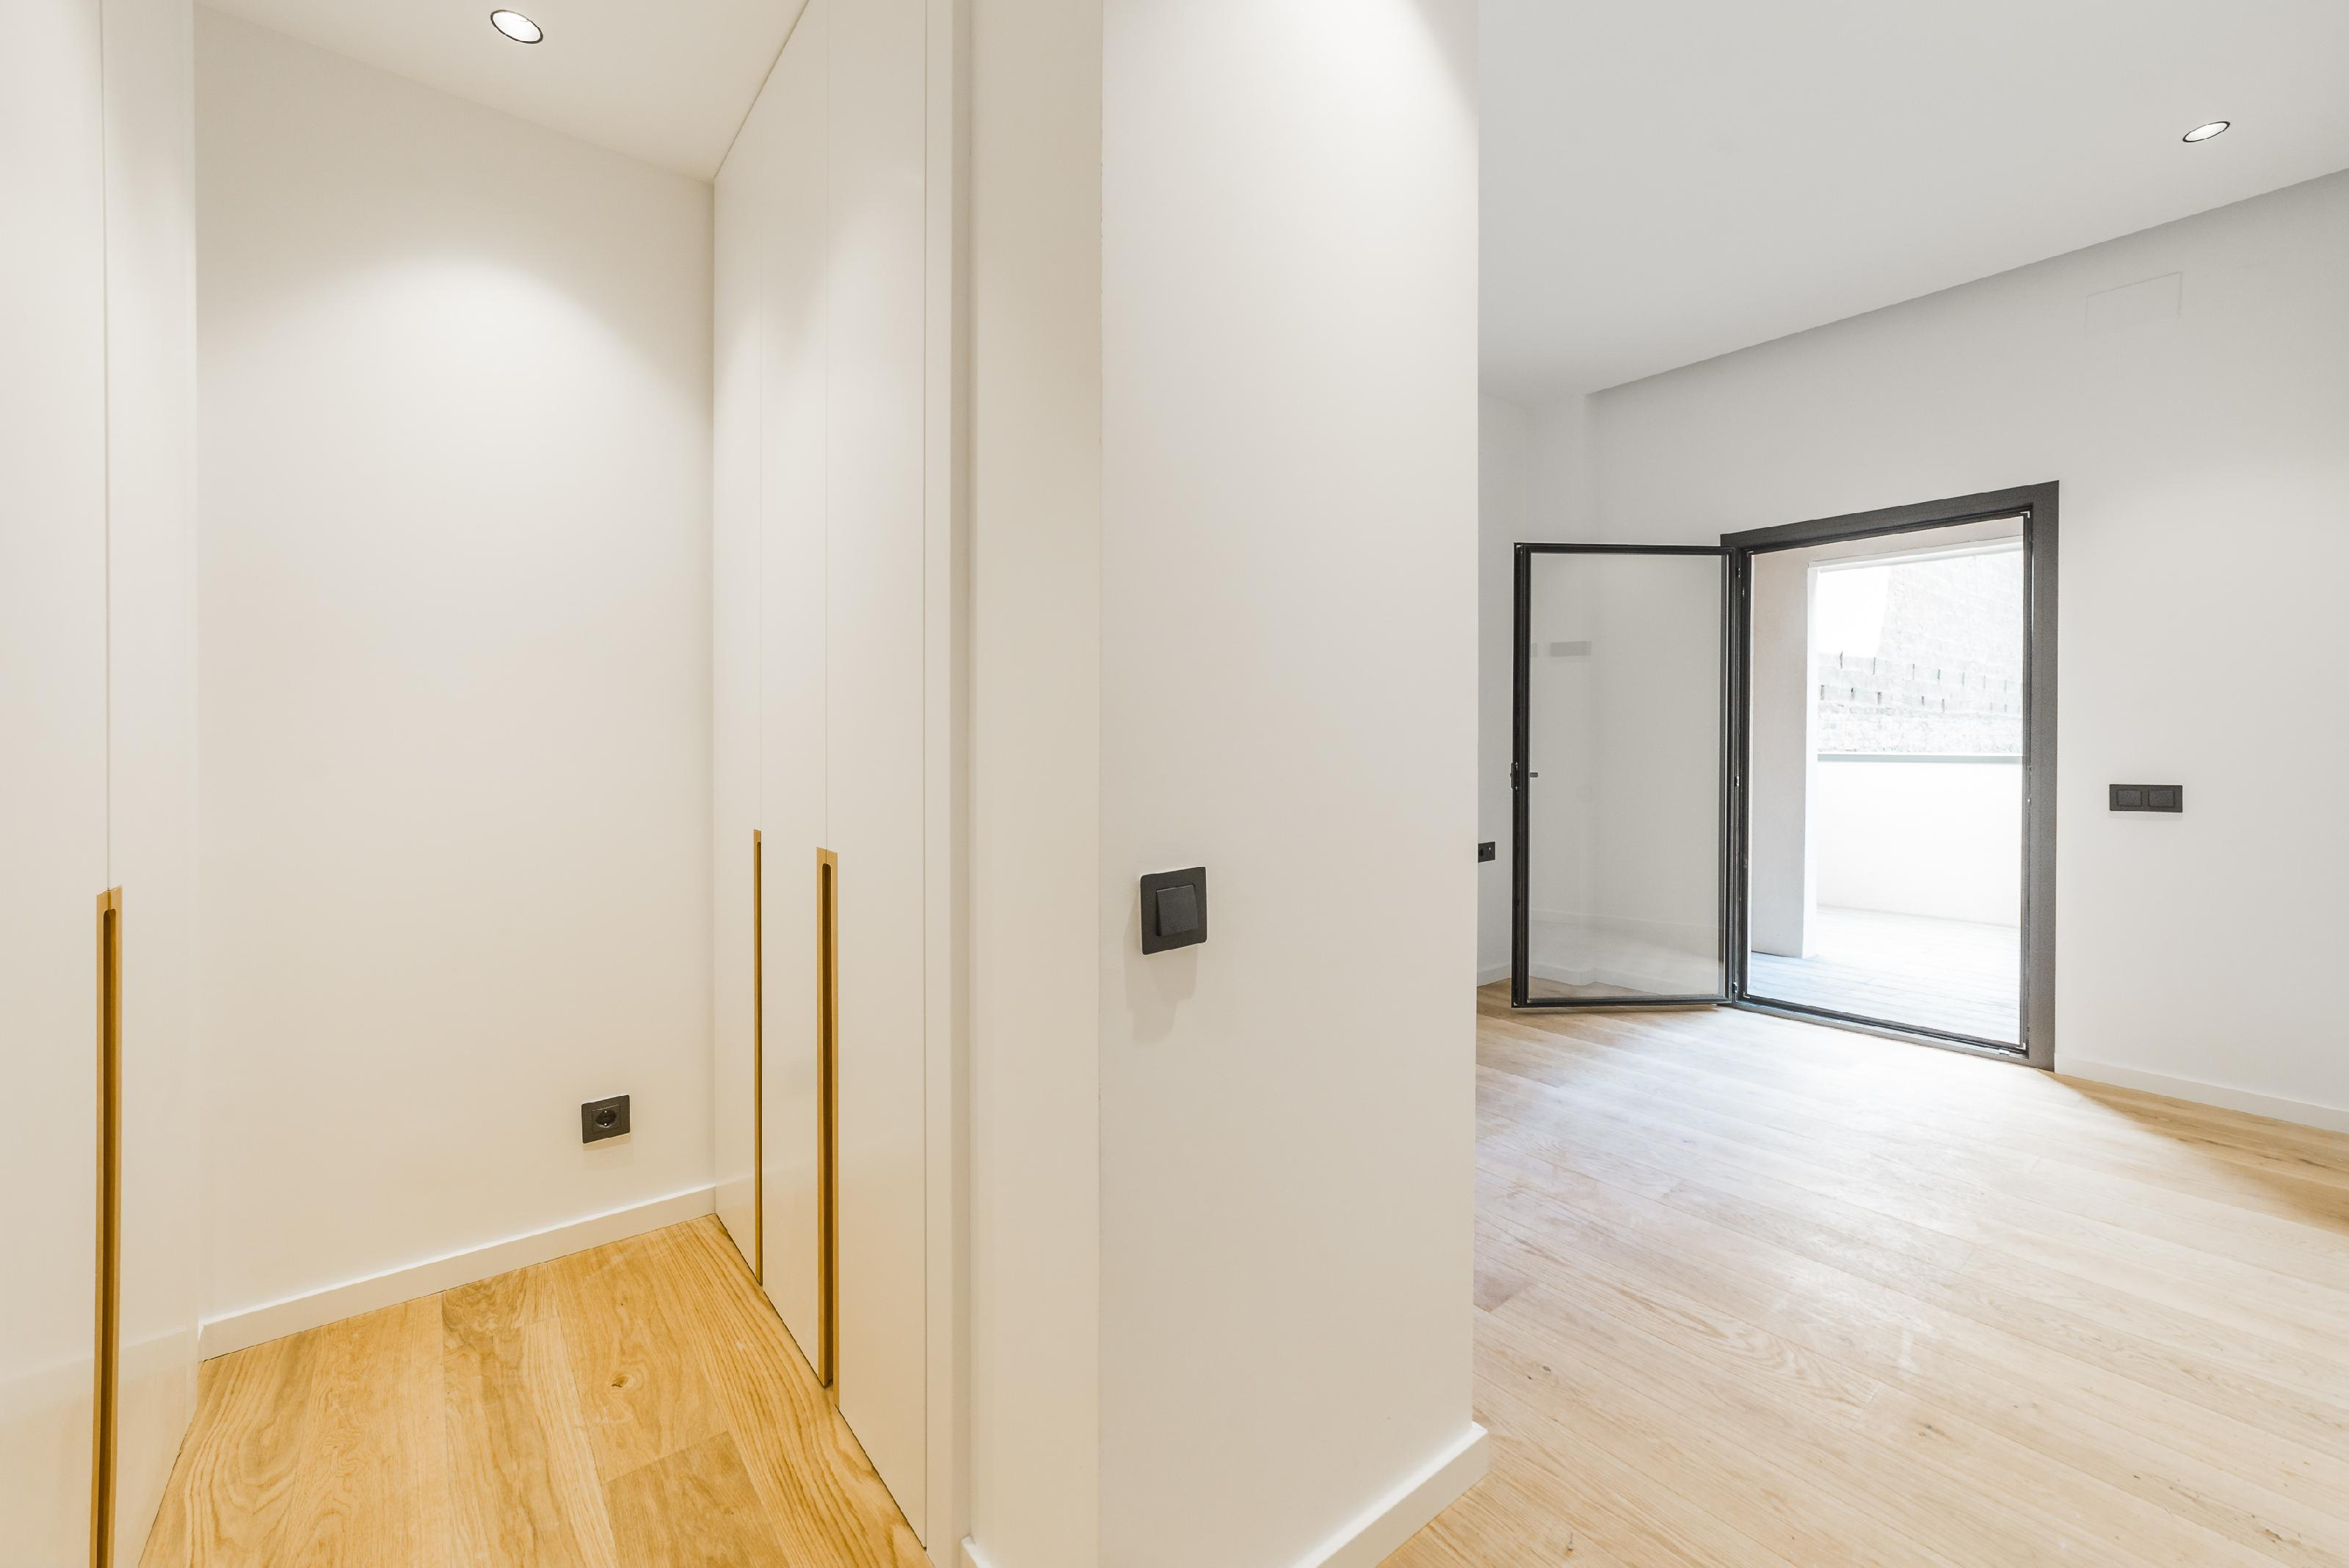 182176 Apartment for sale in Eixample, Old Left Eixample 19